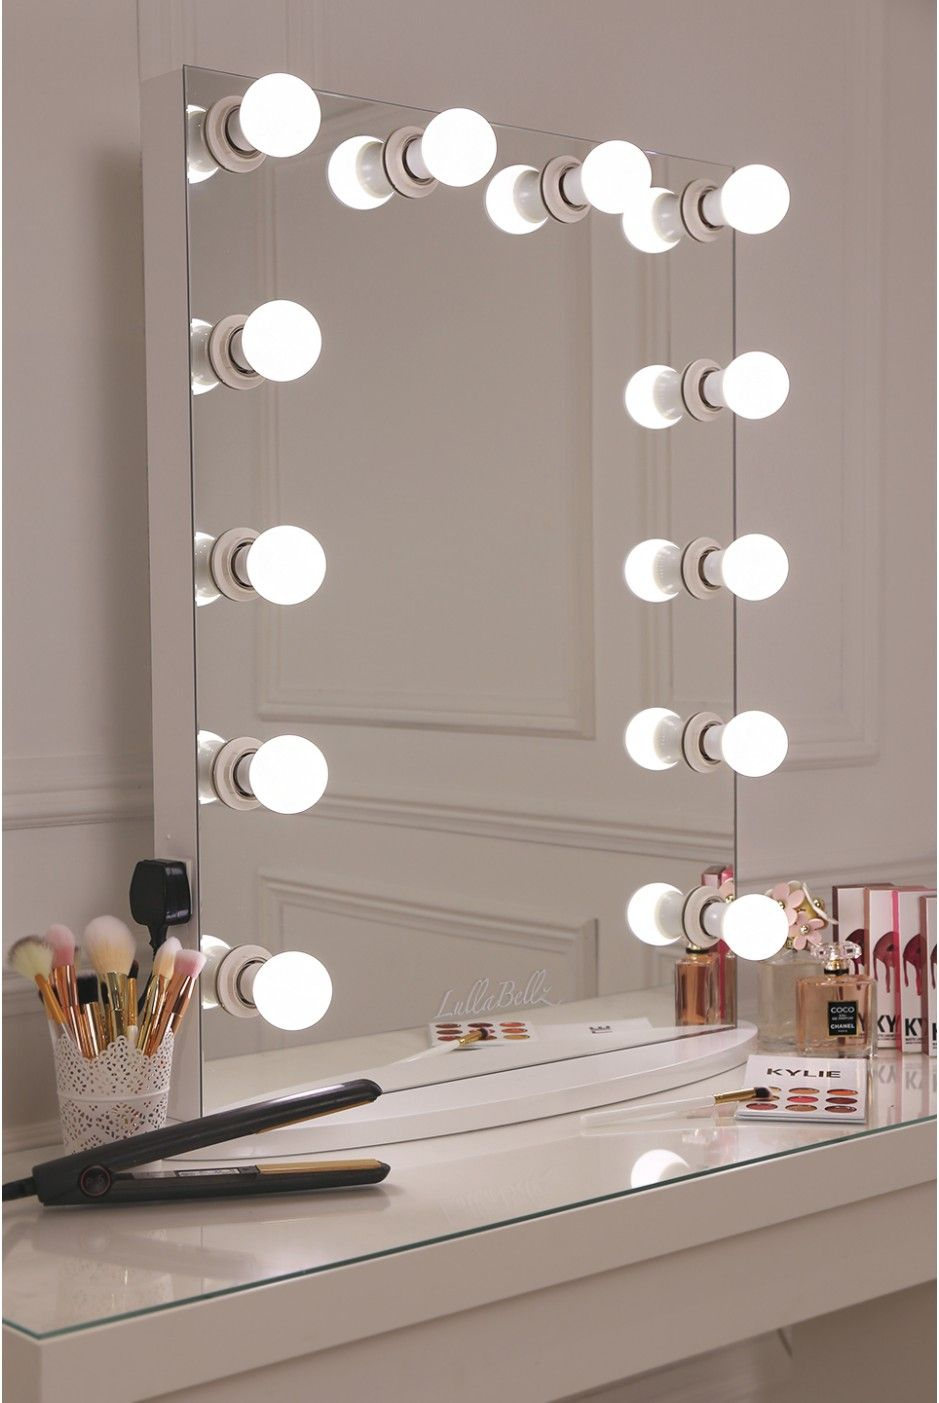 vanity mirror lighting. This Is What Make Up Dreams Are Made Of Girls! Our XL Pro Hollywsood Mirror Which Features A Sleek White Design With 12 LED Frosted Light Bulbs- Vanity Lighting